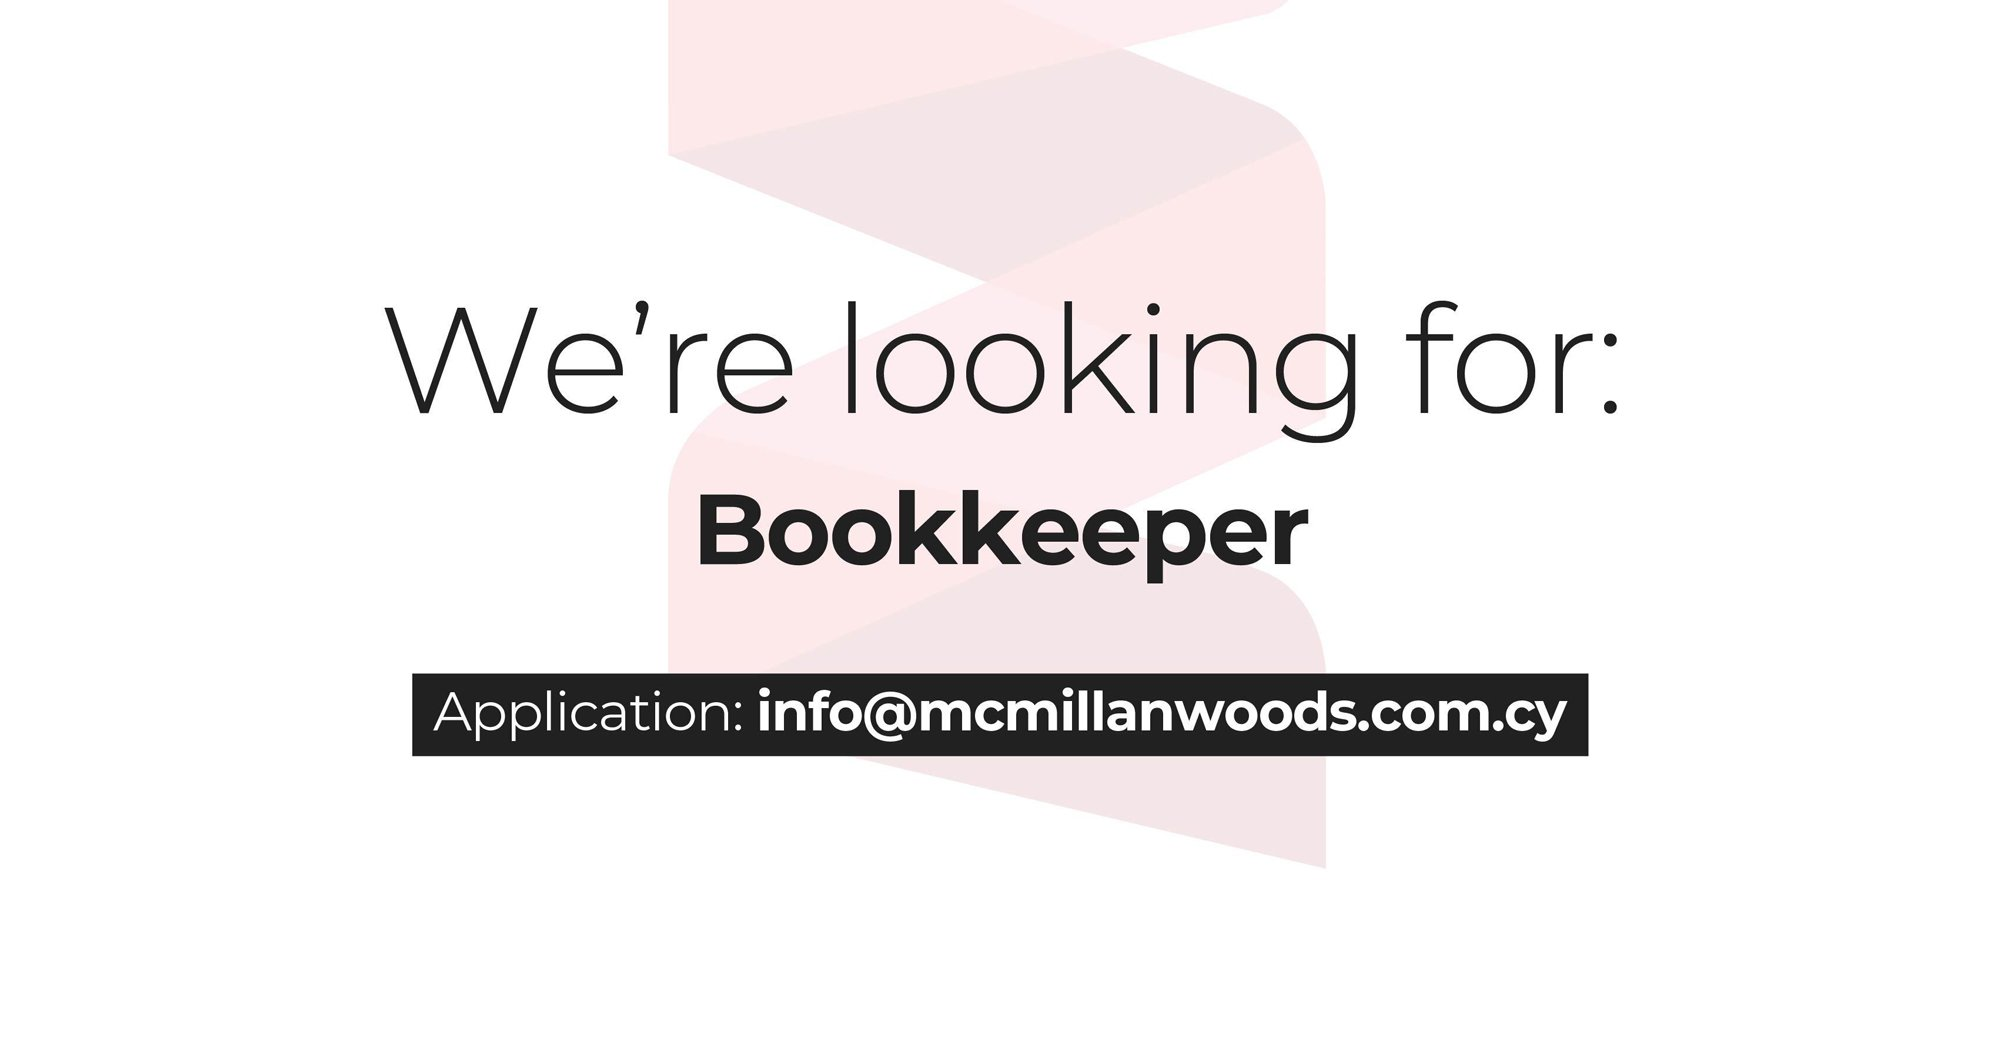 Bookkeeper Job Vacancy